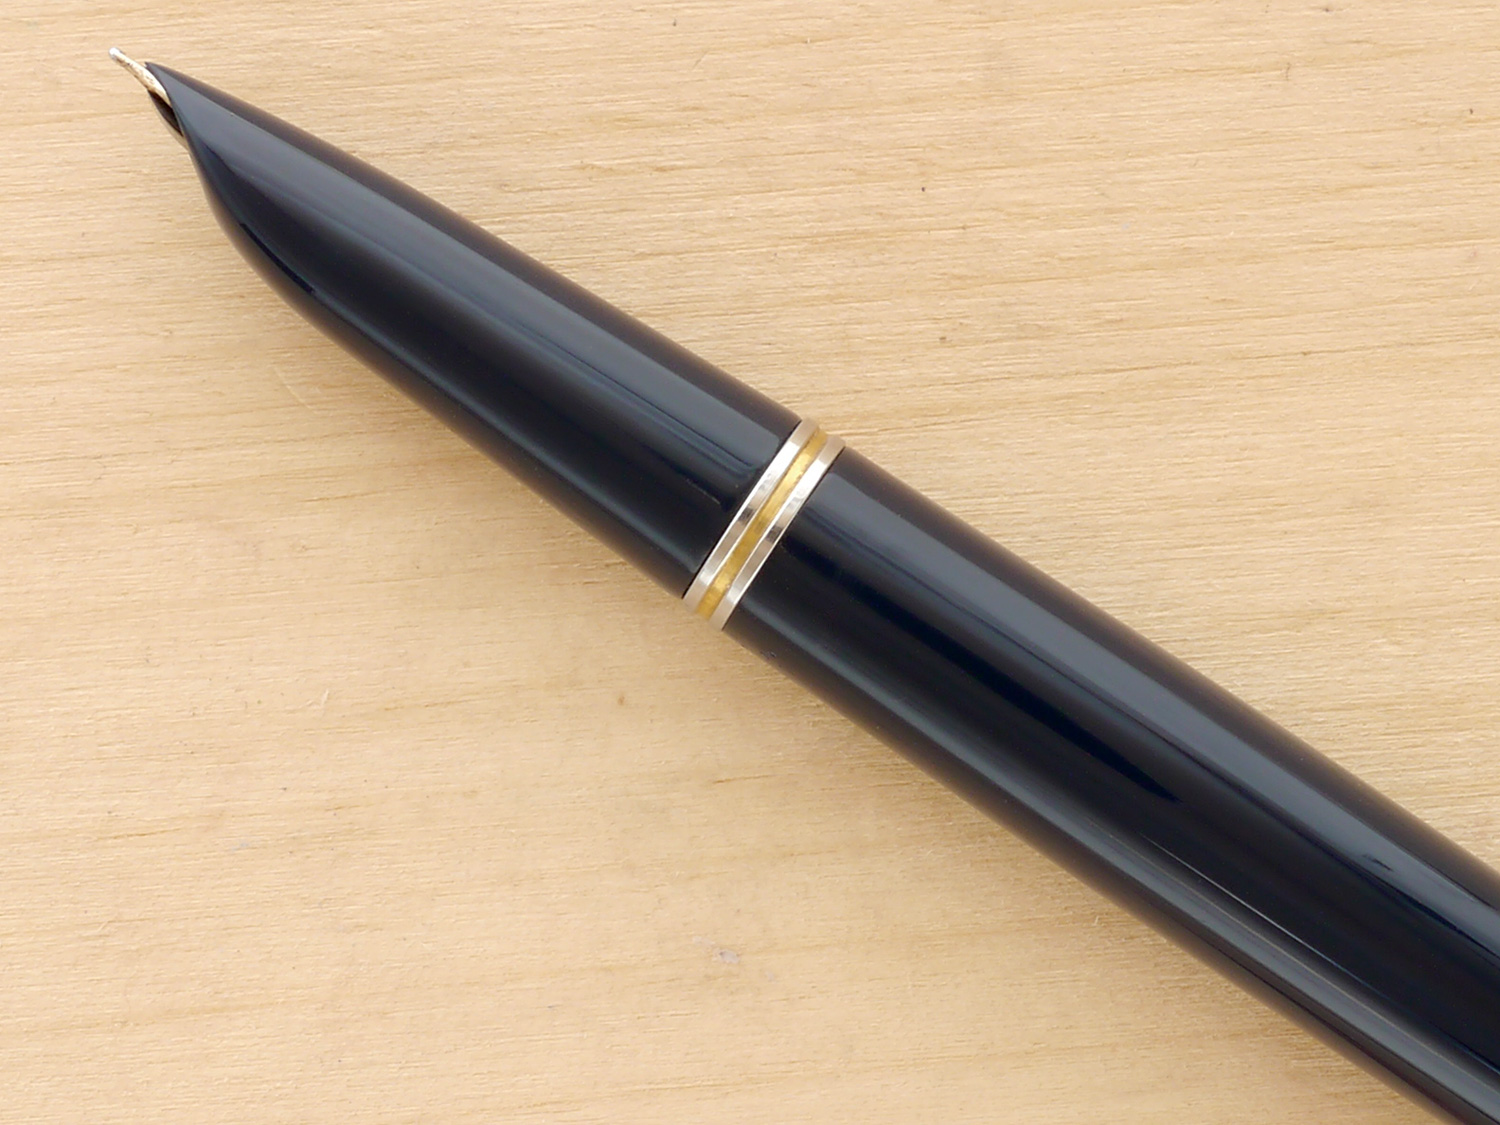 Parker 51 Vacumatic Fountain Pen, Blue Cedar, Gold-Filled Cap, F, nib profile